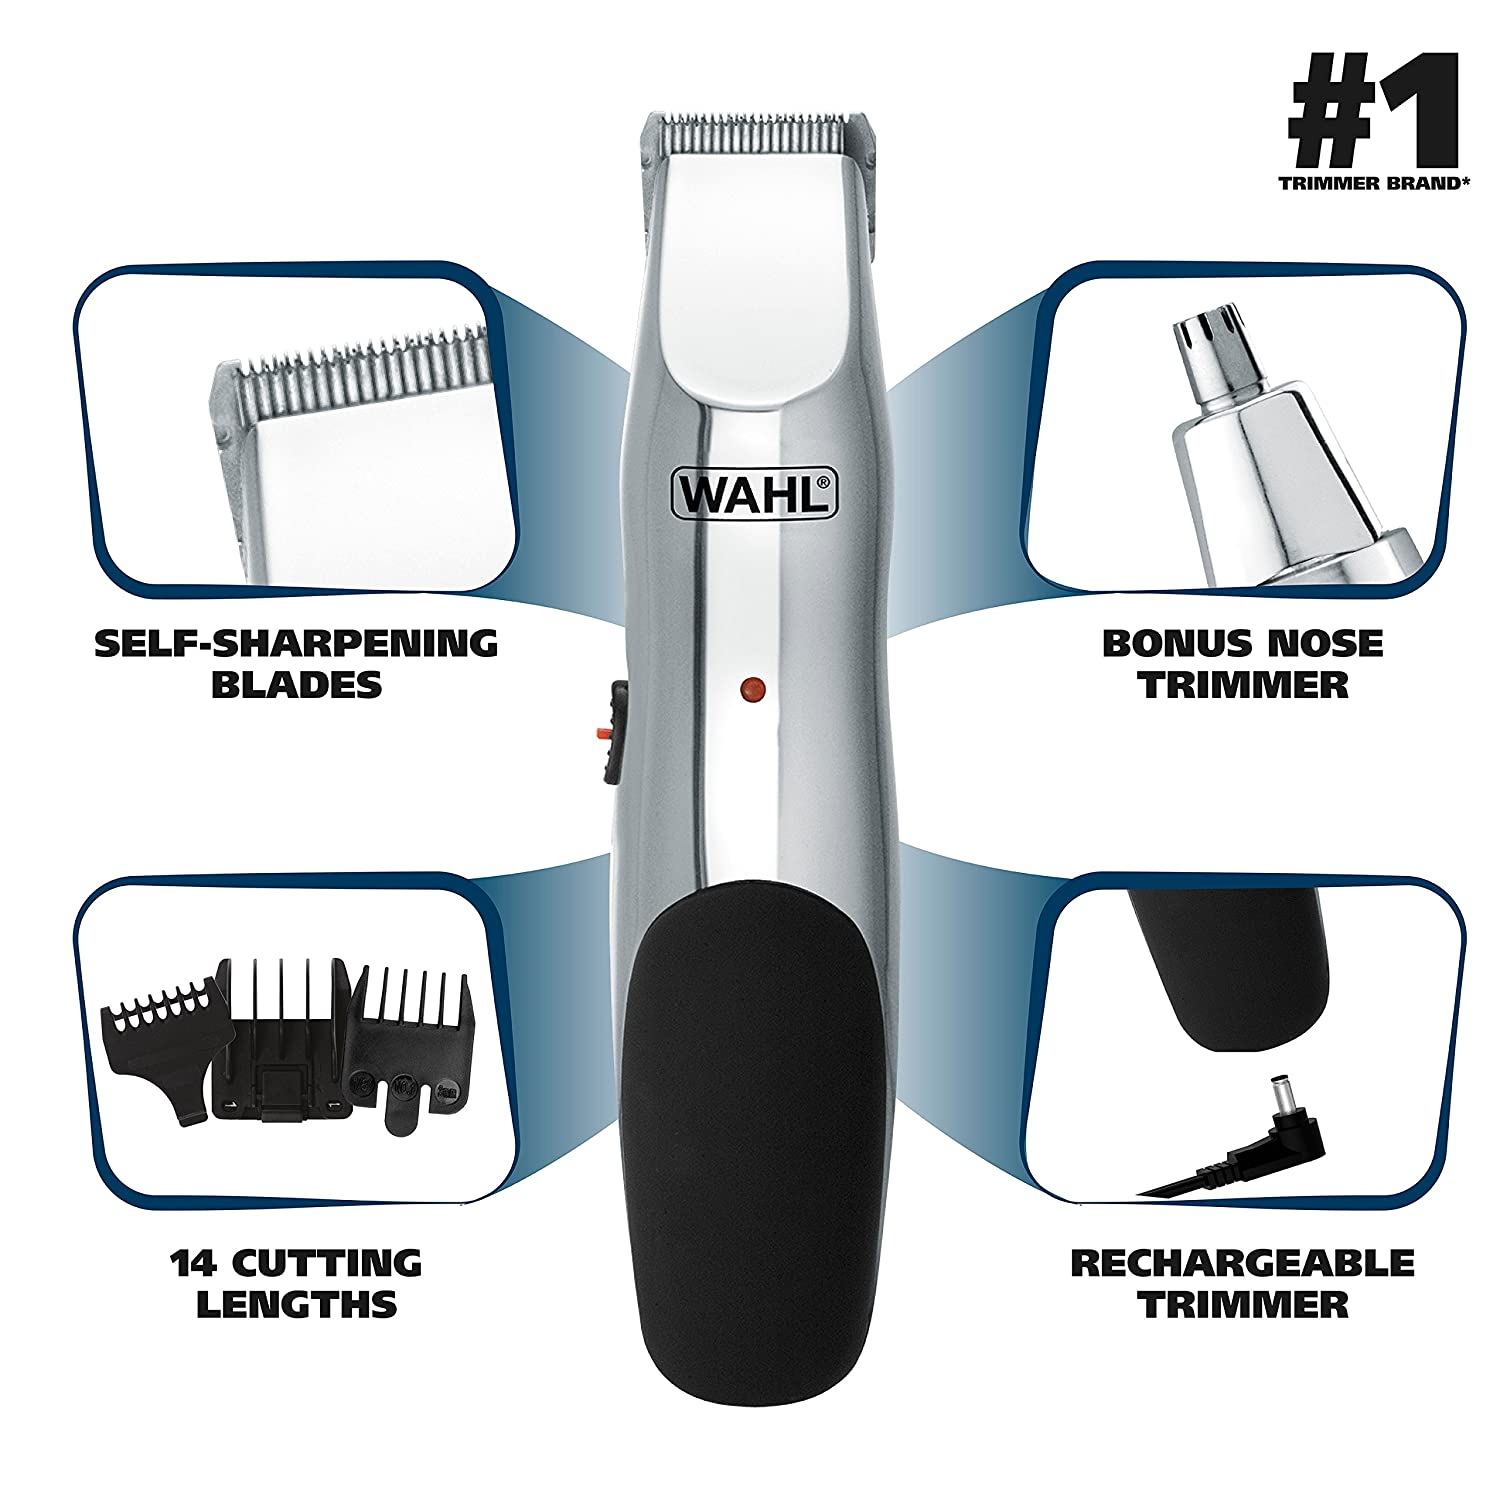 Wahl Groomsman Rechargeable Beard, Mustache, Hair Nose Hair Trimmer for Detailing Grooming – Model 5622